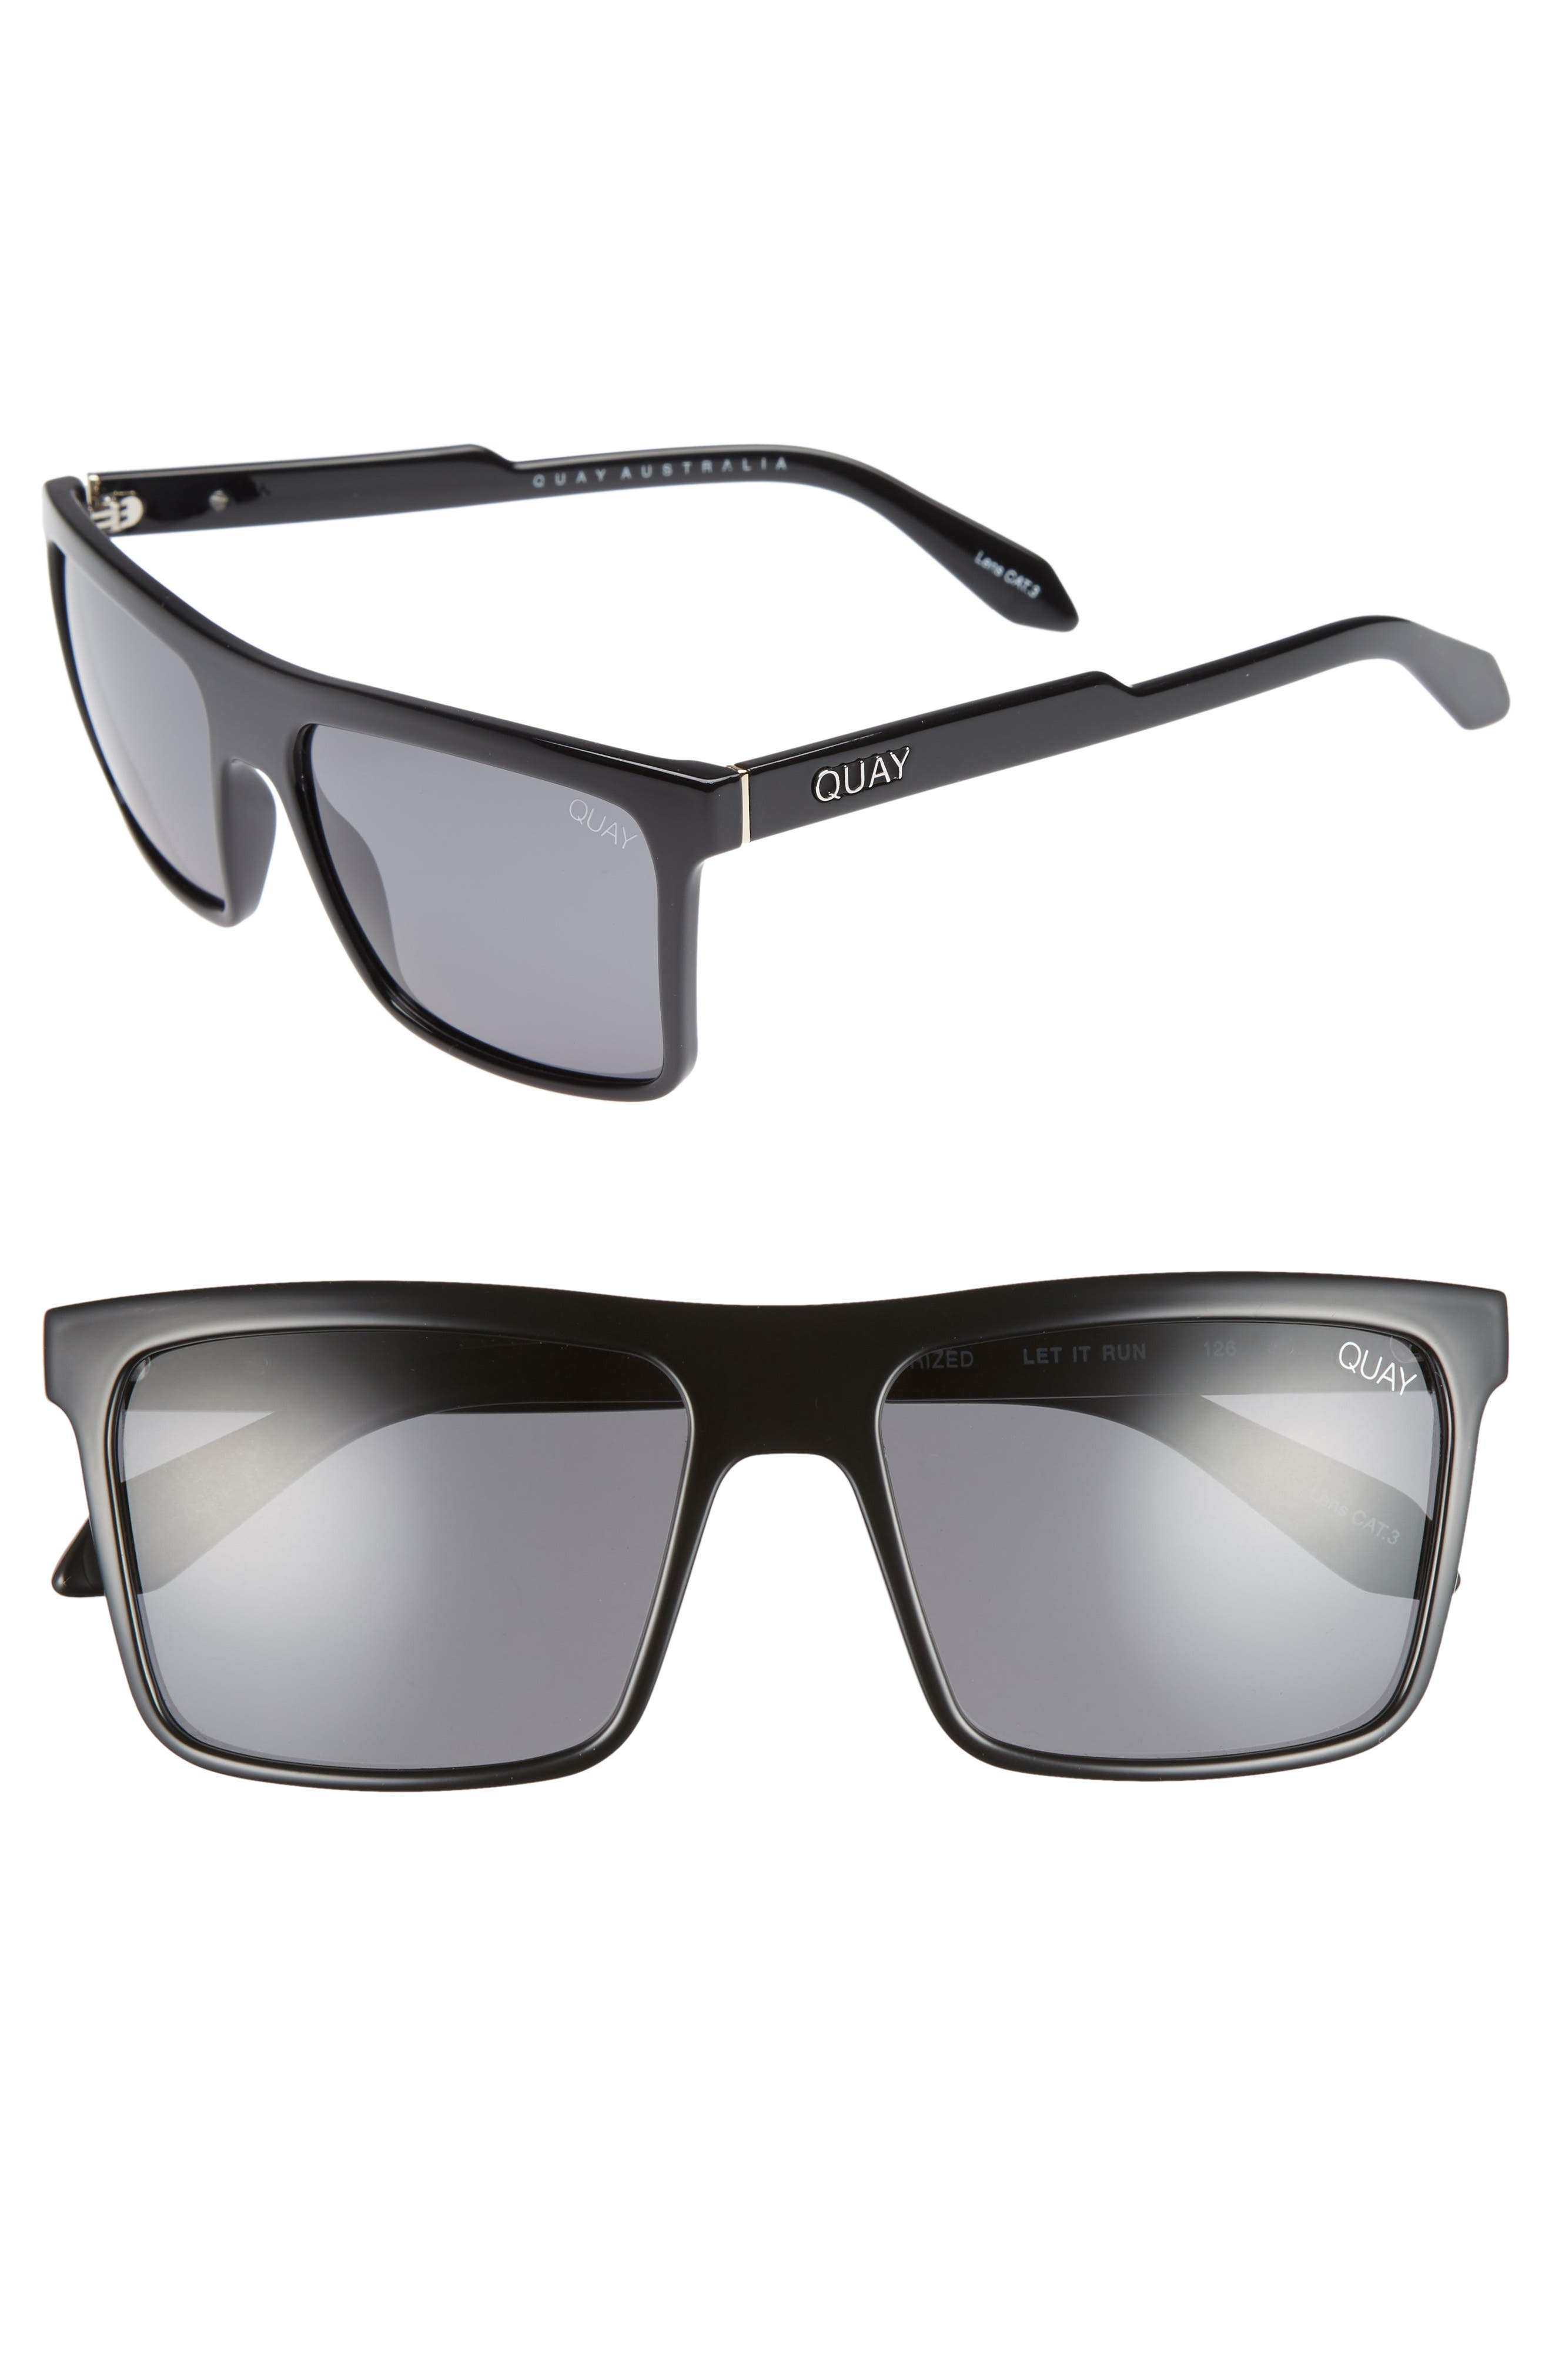 Let It Run 57mm Polarized Sunglasses,                         Main,                         color, BLACK / SMOKE LENS